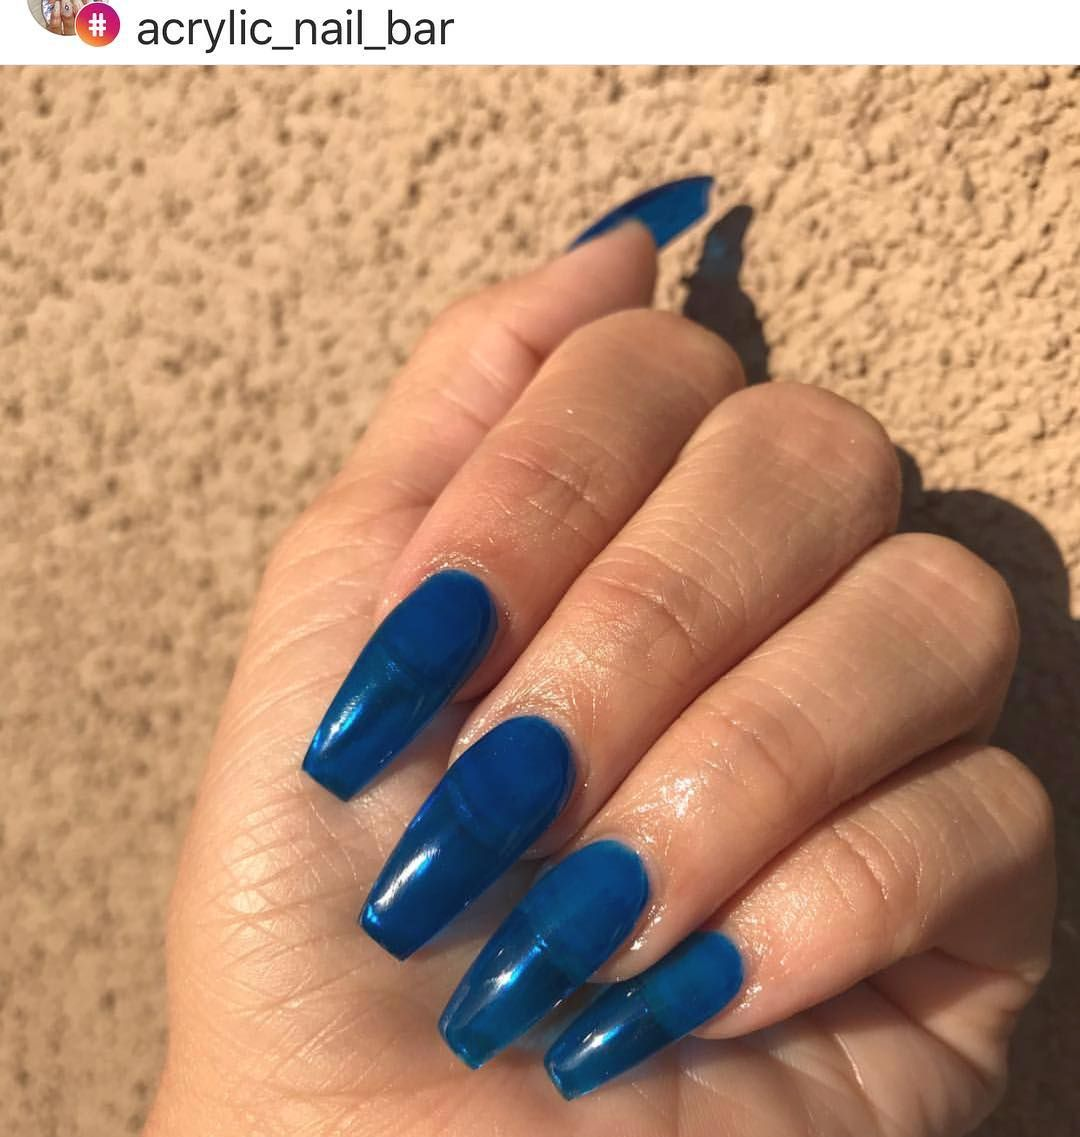 Jelly Nails Using Our Gel Tint Top Coat Royal Blue Done By Acrylic Nail Bar How To Recreate Apply Clear Acryli Jelly Nails Clear Acrylic Nails Blue Nails